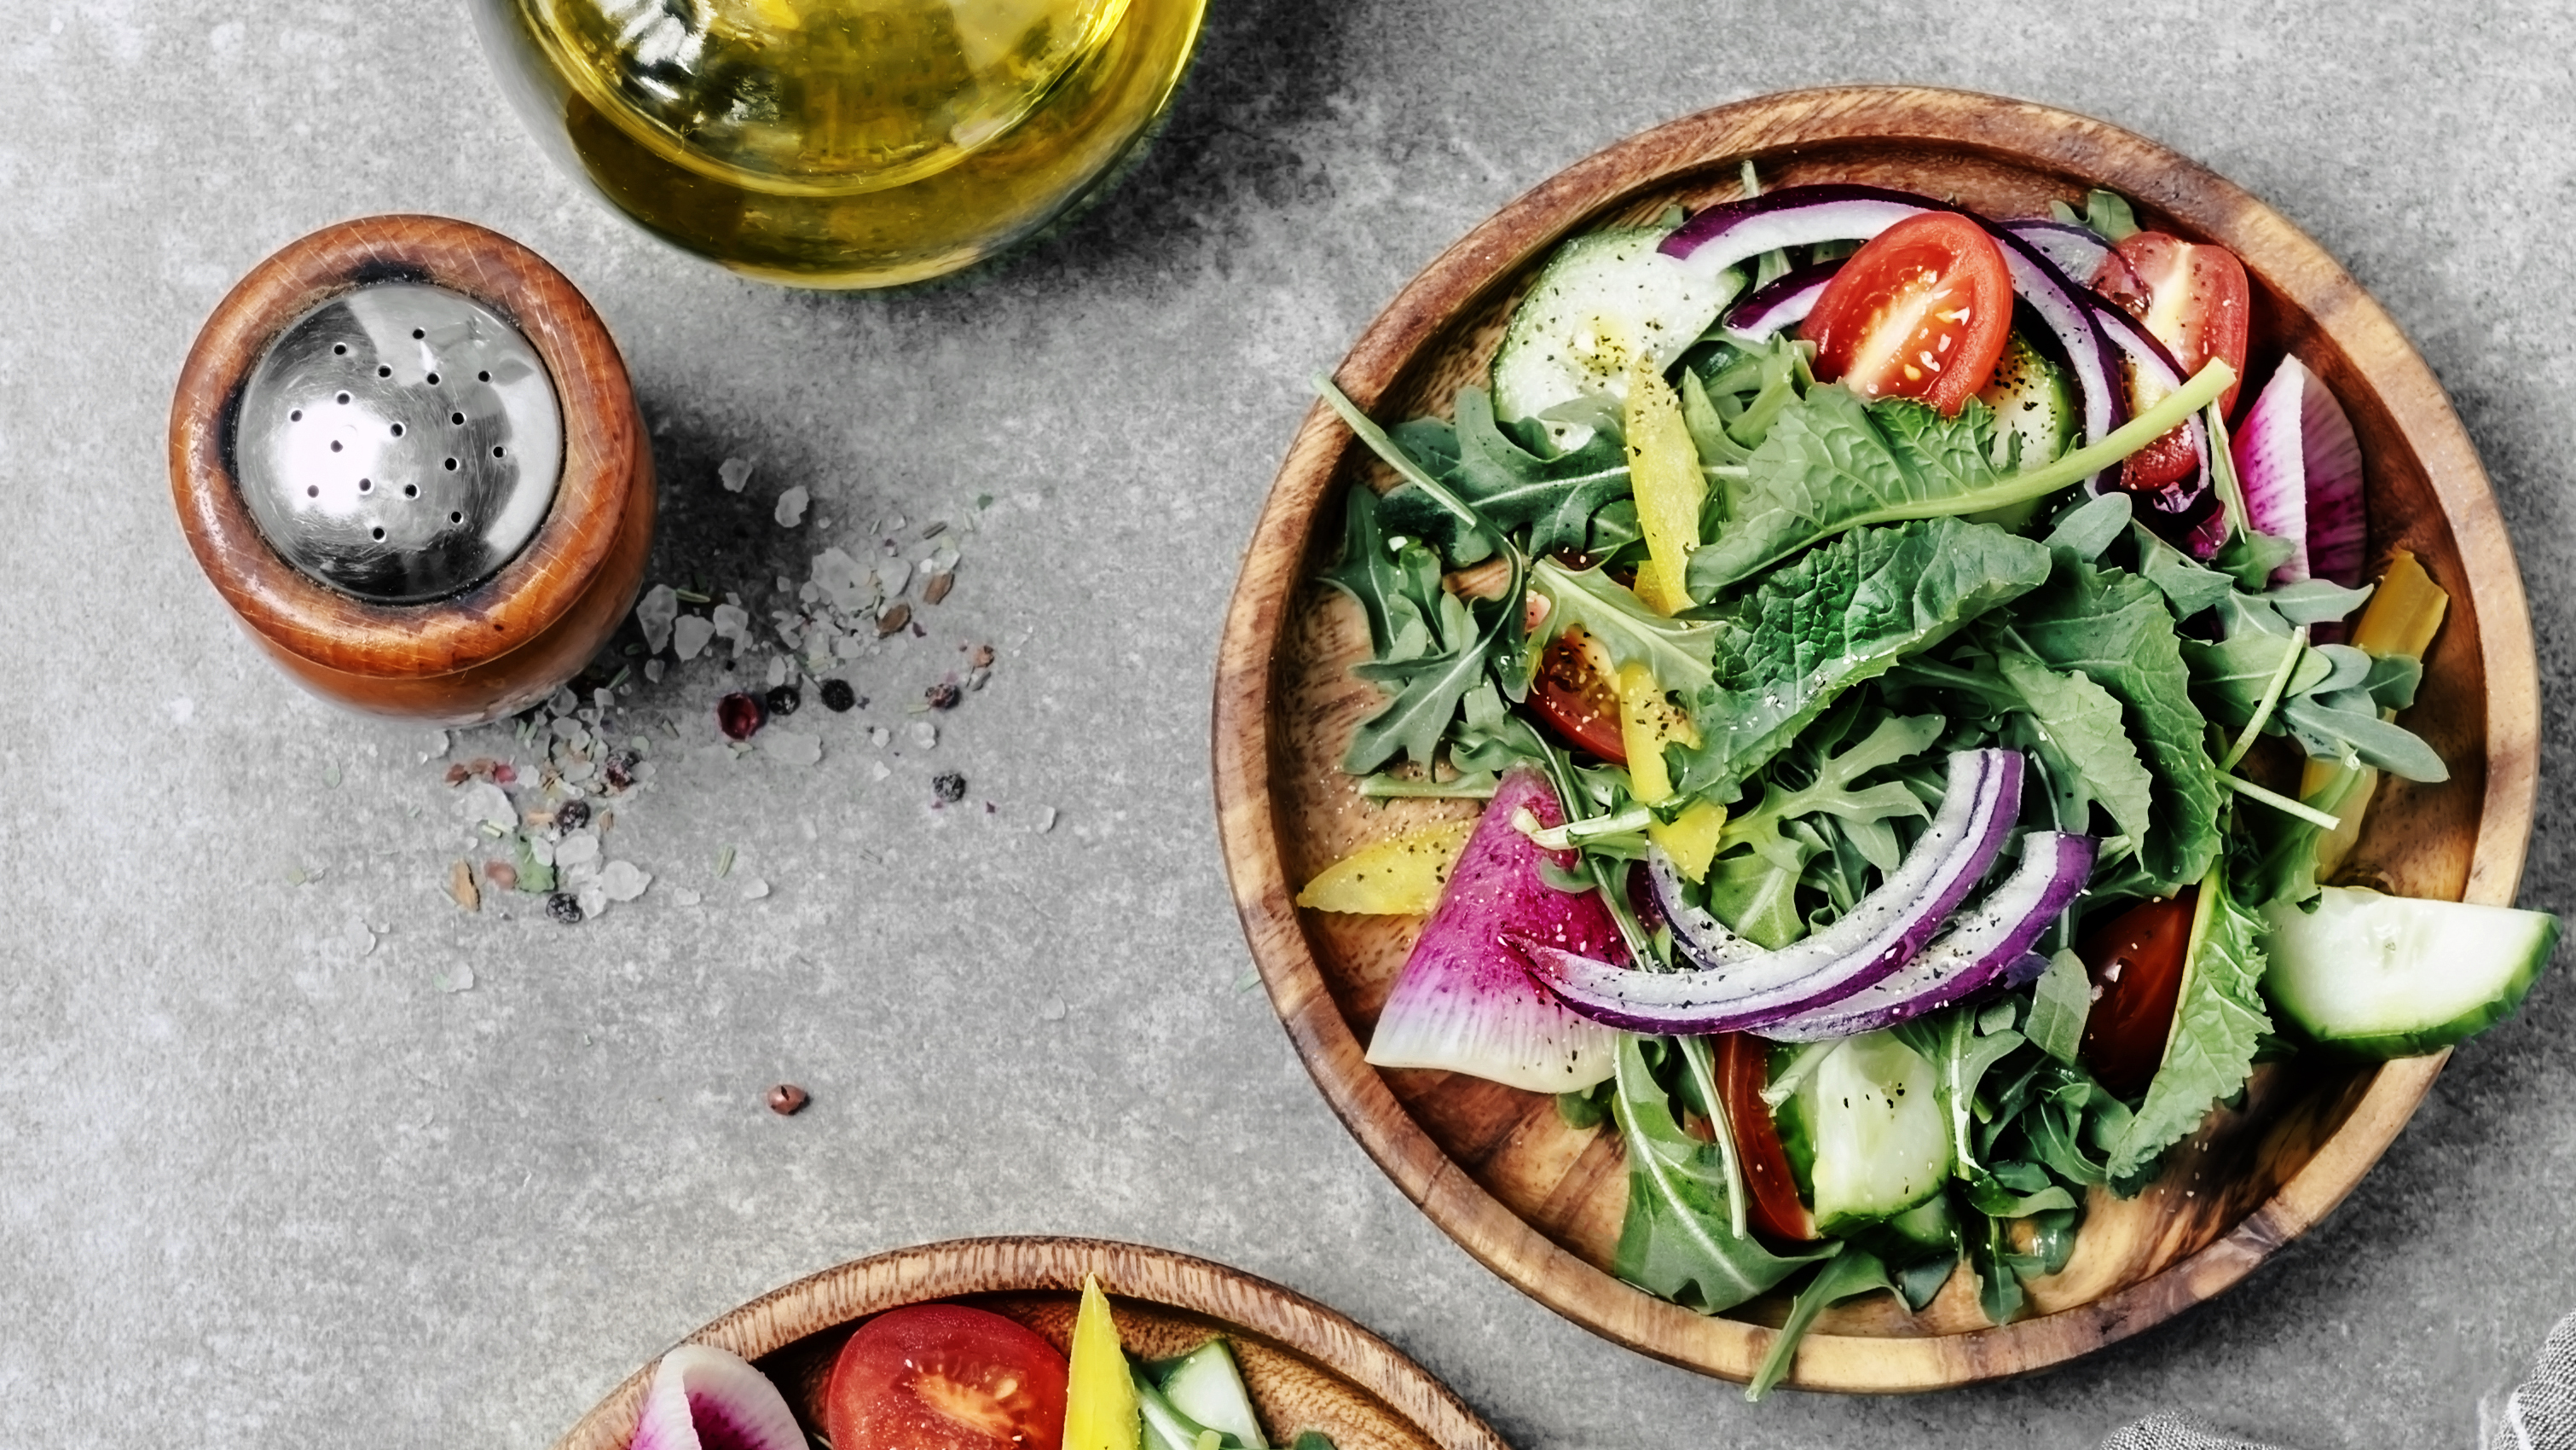 Need Another Reason to Eat a Salad? It Can Help Your Memory